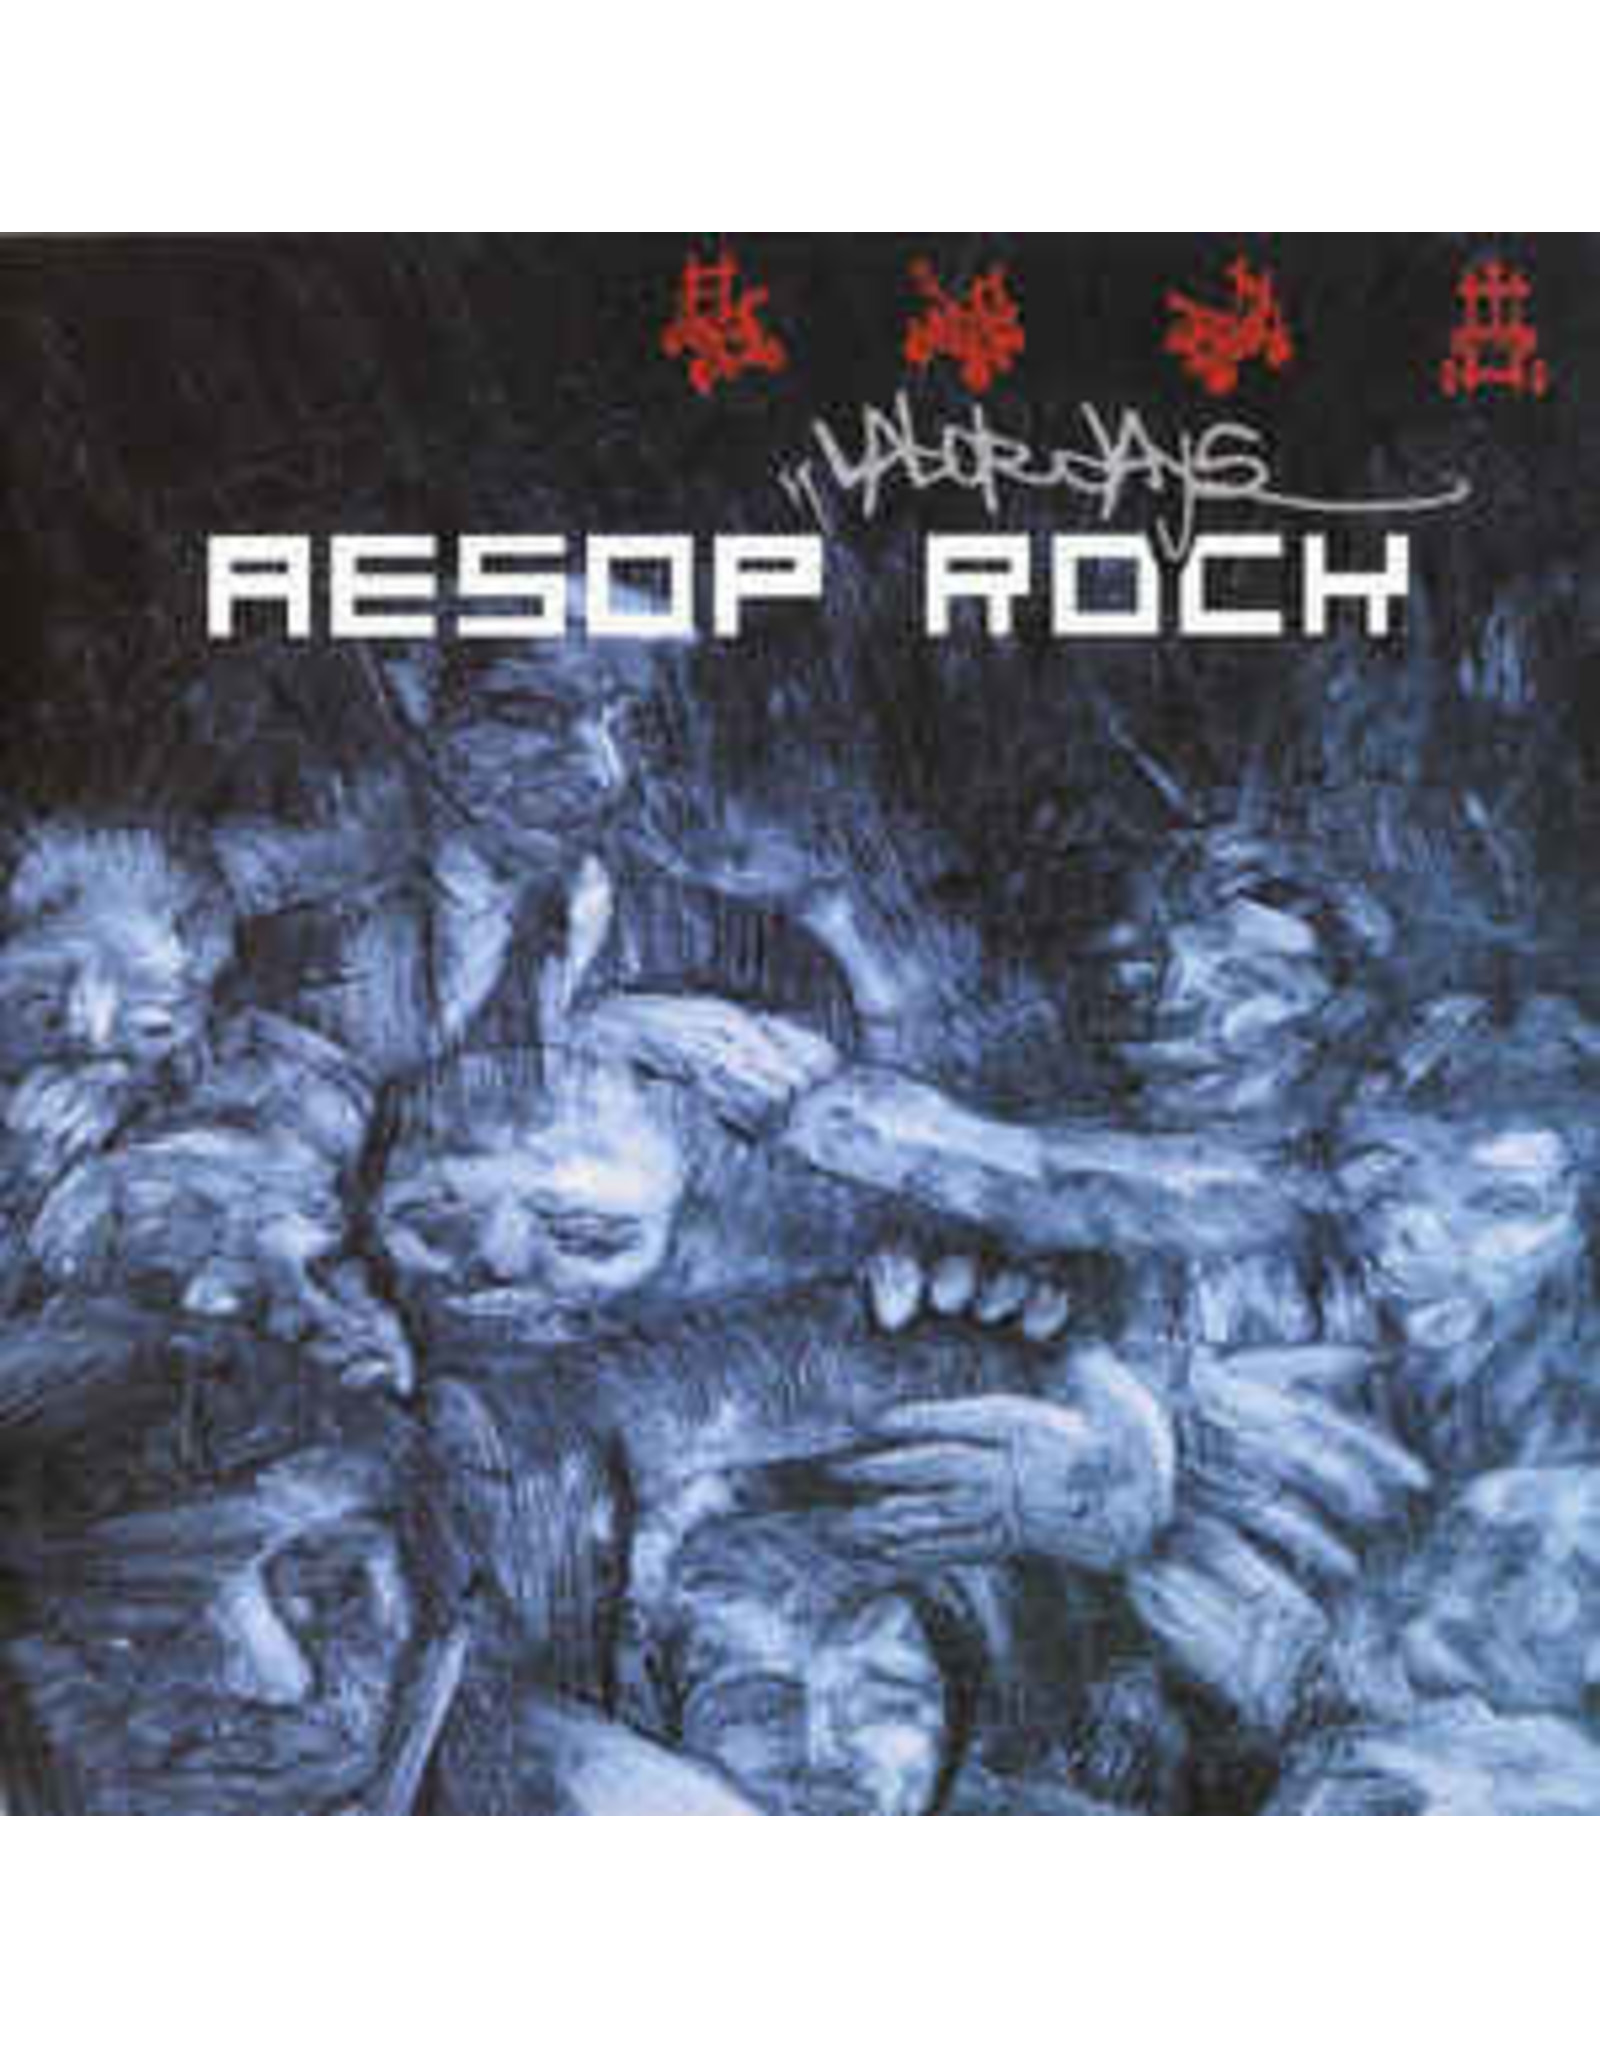 Aesop Rock/Labor Days